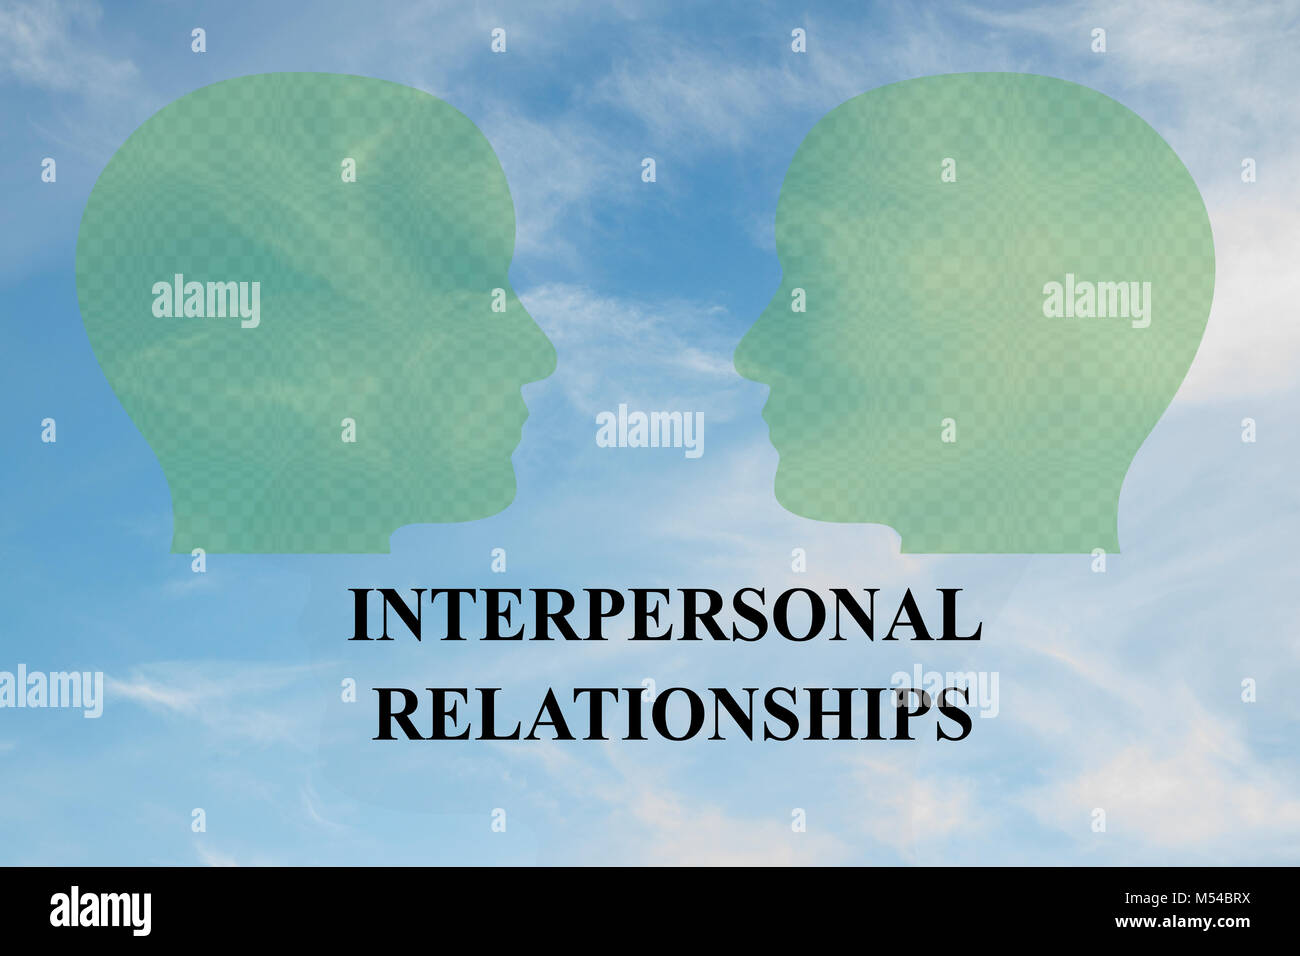 Render illustration of INTERPERSONAL RELATIONSHIPS title under two head silhouettes, with cloudy sky as a background. - Stock Image